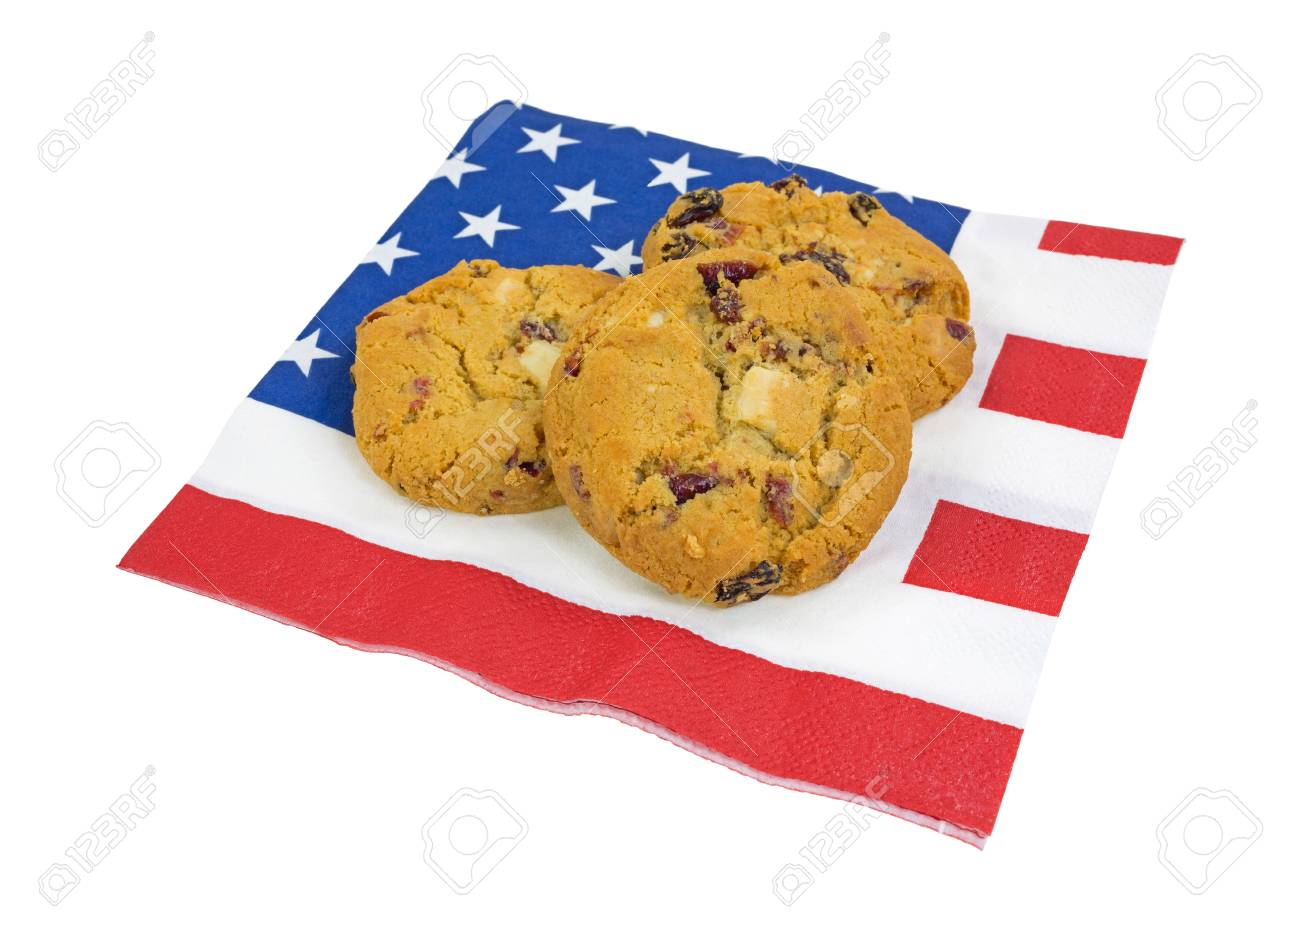 Three white chocolate chip with cranberries on a flag motif napkin. Stock Photo - 21137976